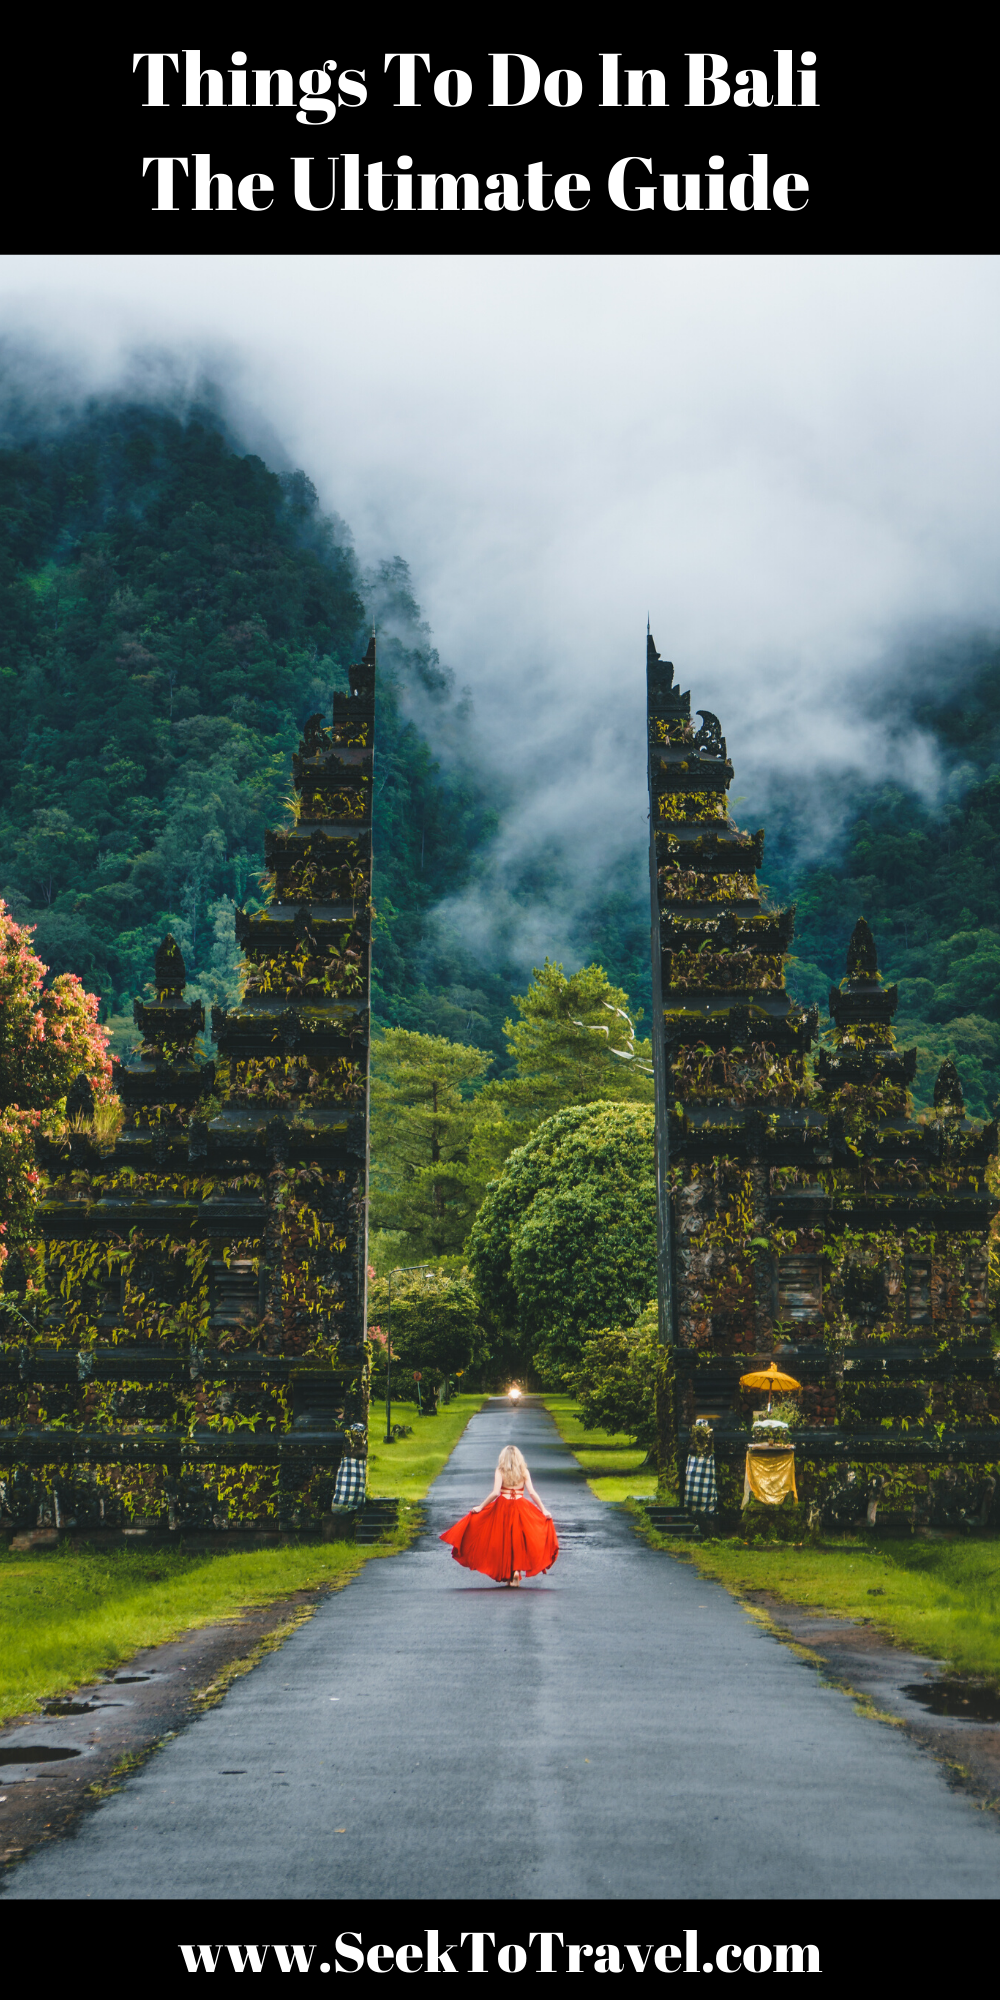 Things To Do In Bali - Only Guide You Will Need in 2020 - We connect travellers to private ...